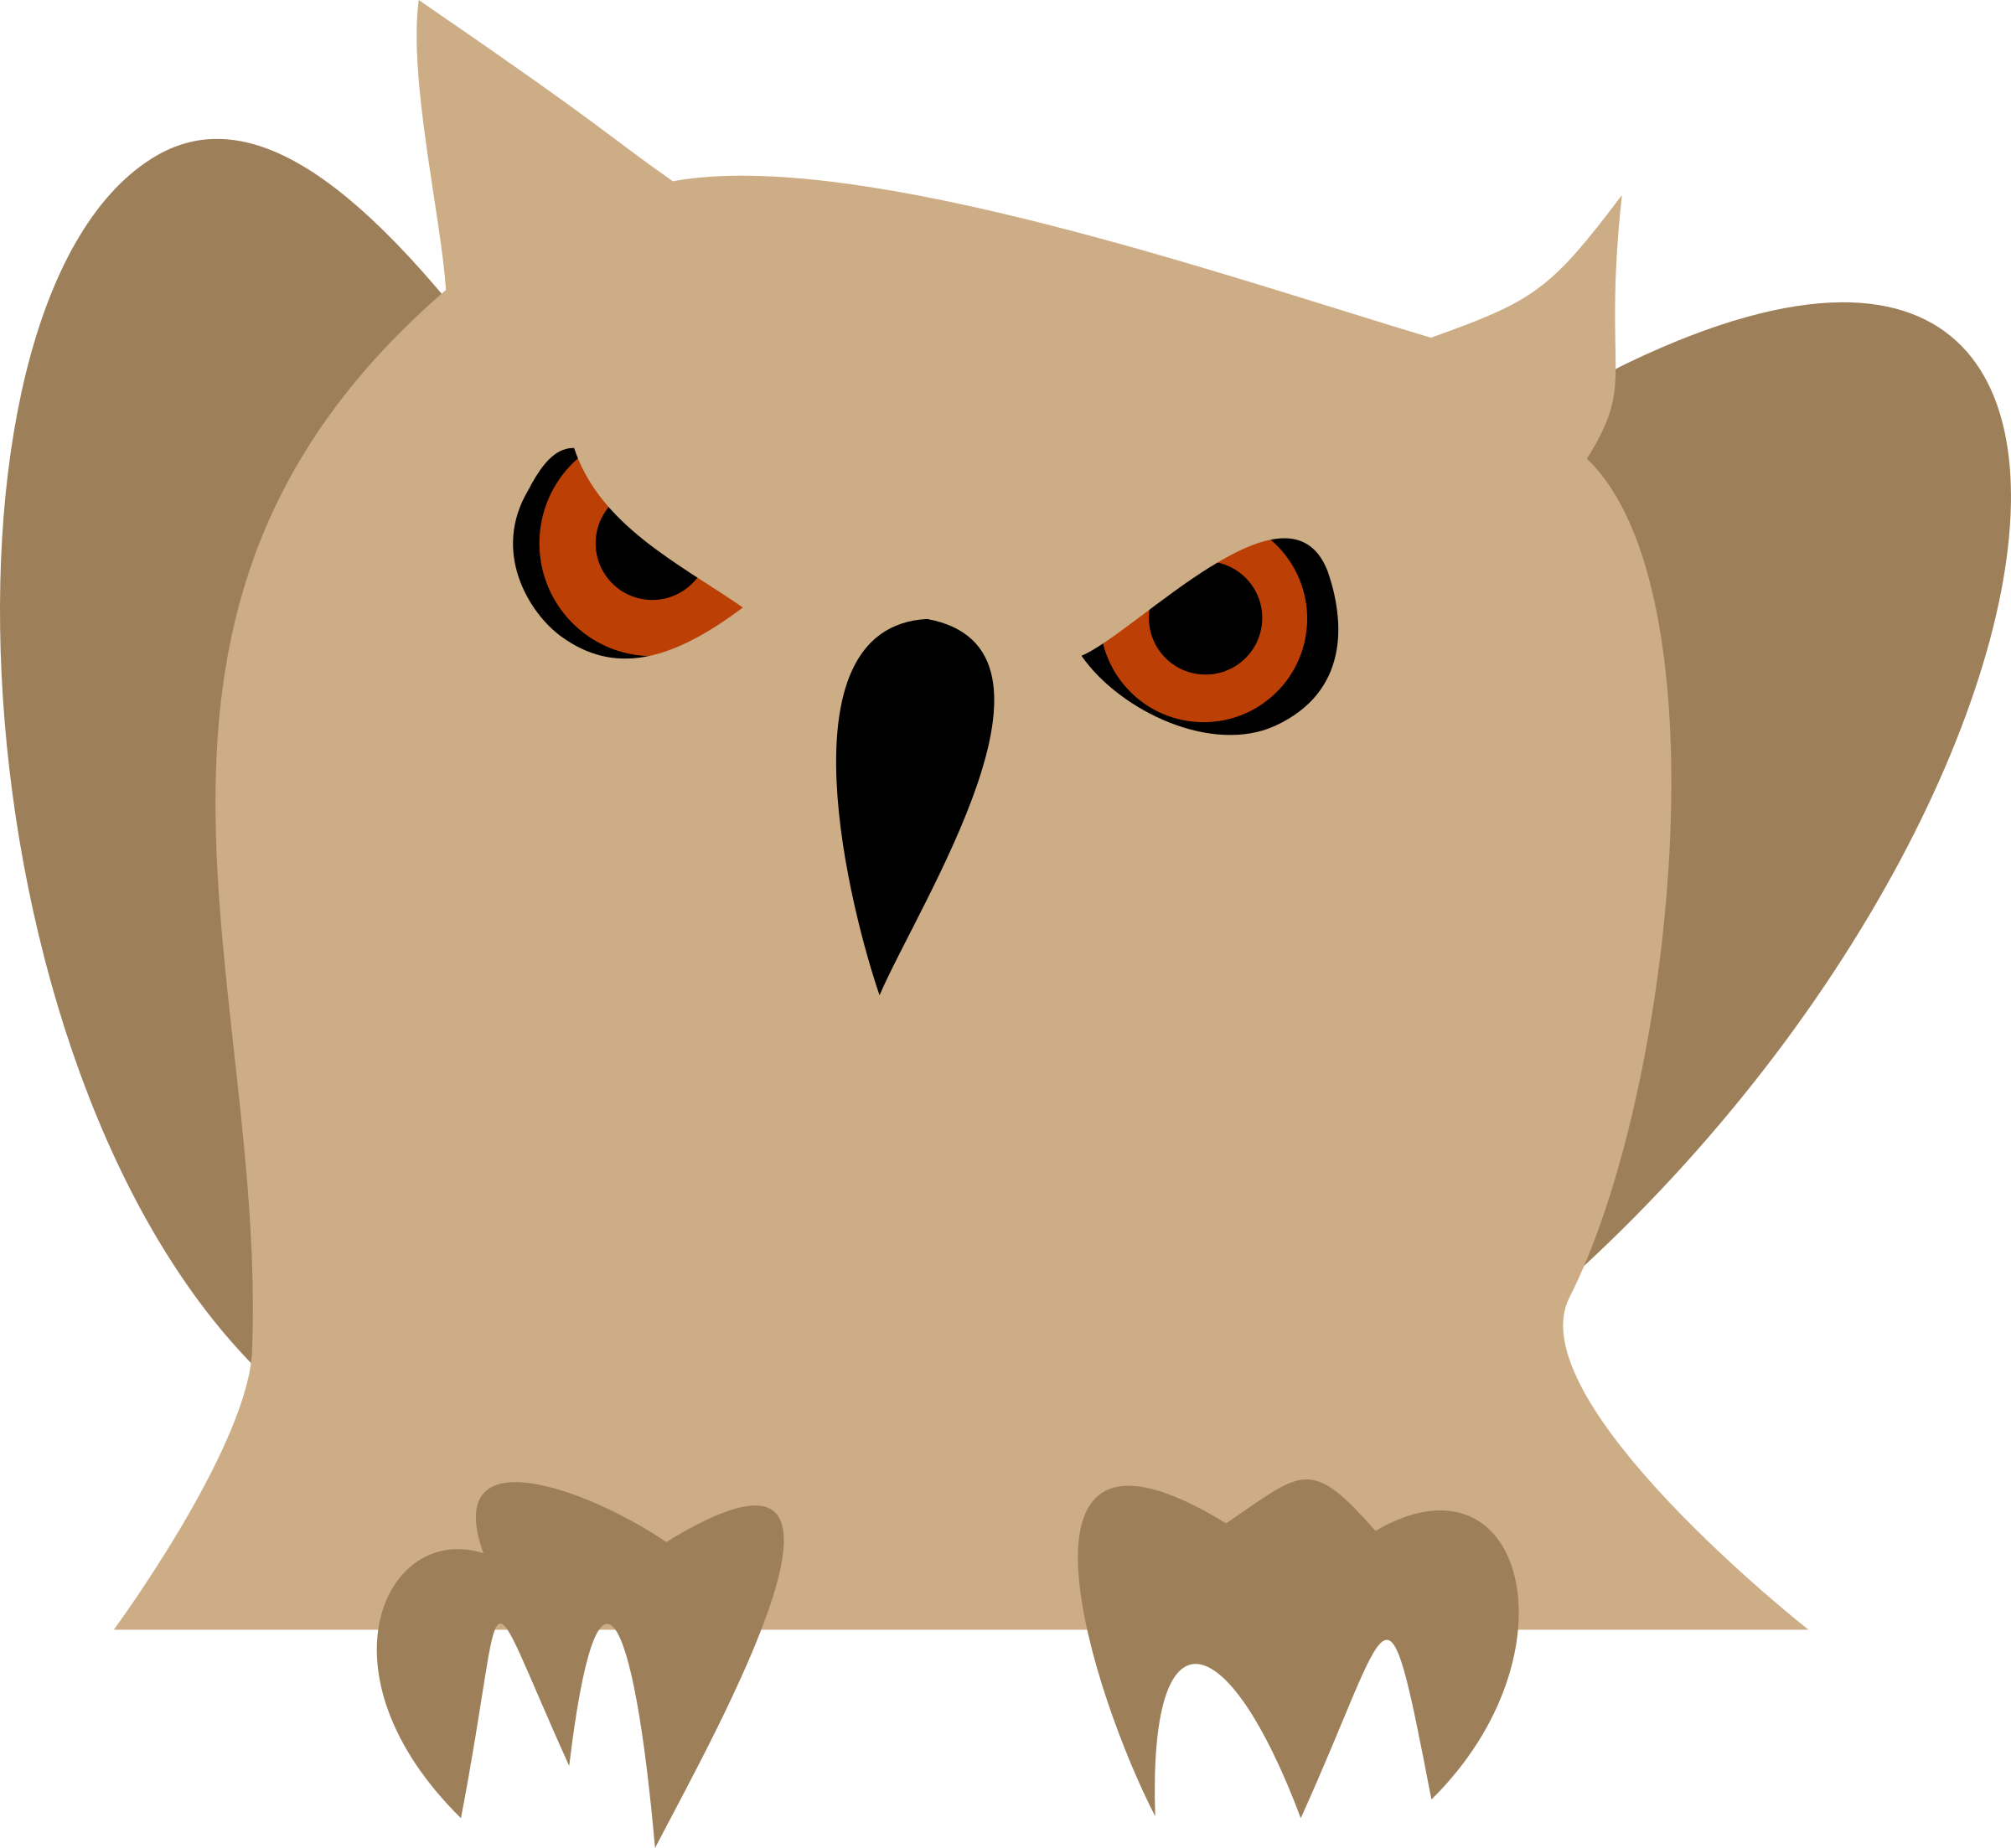 Disappointed big image png. Wing clipart owl